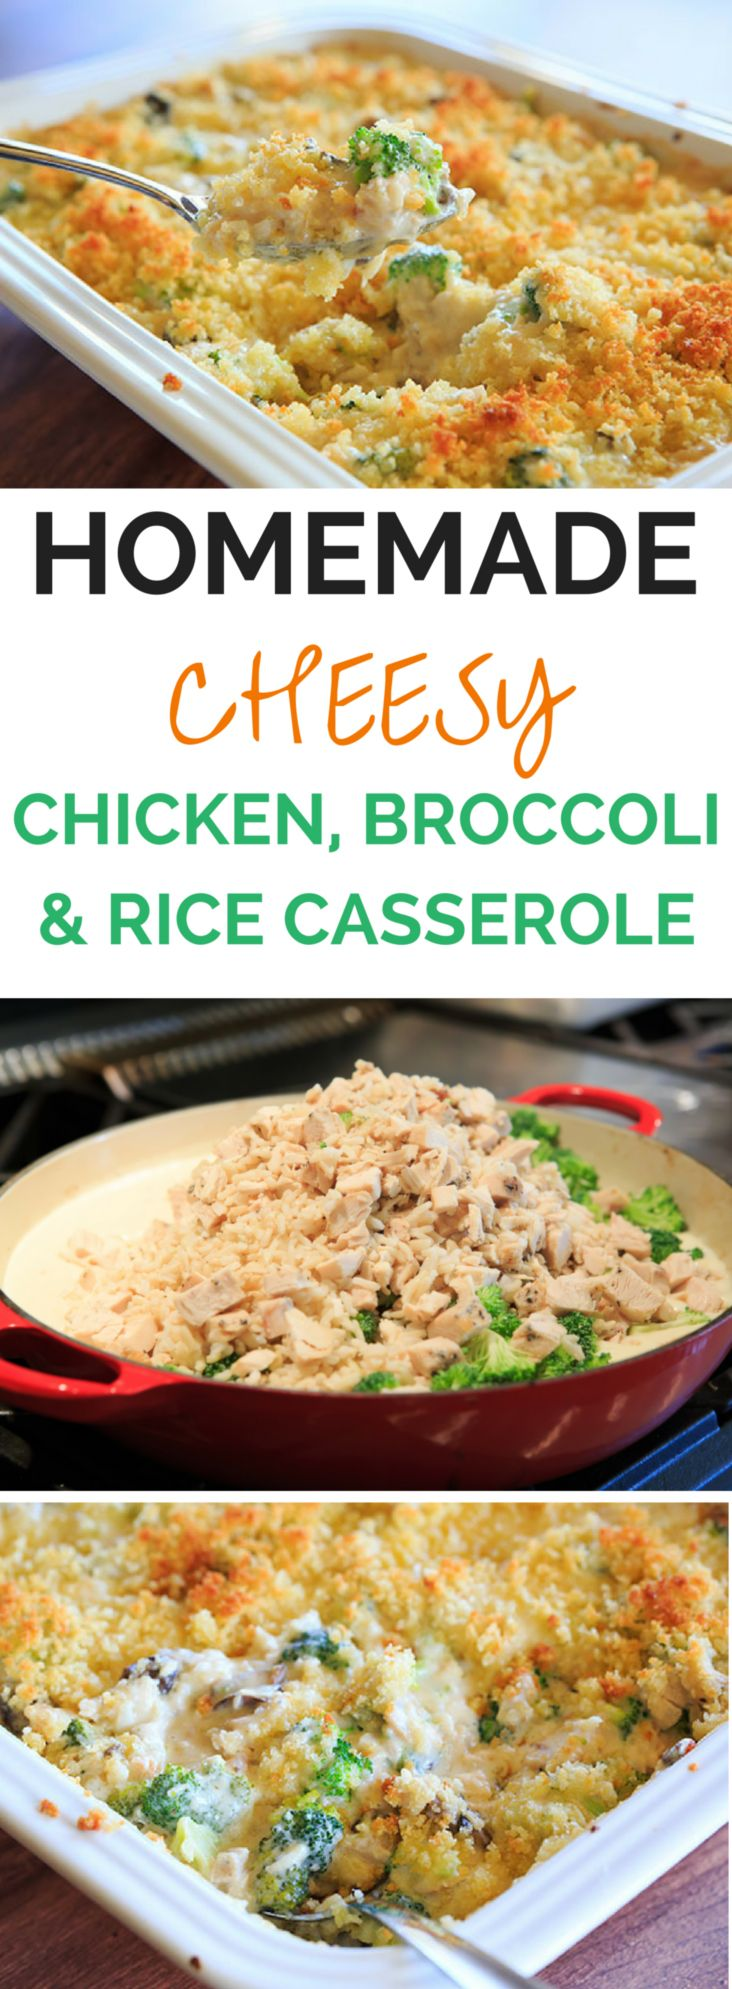 Cheesy Chicken, Broccoli & Rice Casserole - A homemade recipe for chicken, broccoli and rice casserole made completely from scratch with a cheesy cream sauce and topped with buttered breadcrumbs. | browneyedbaker.com